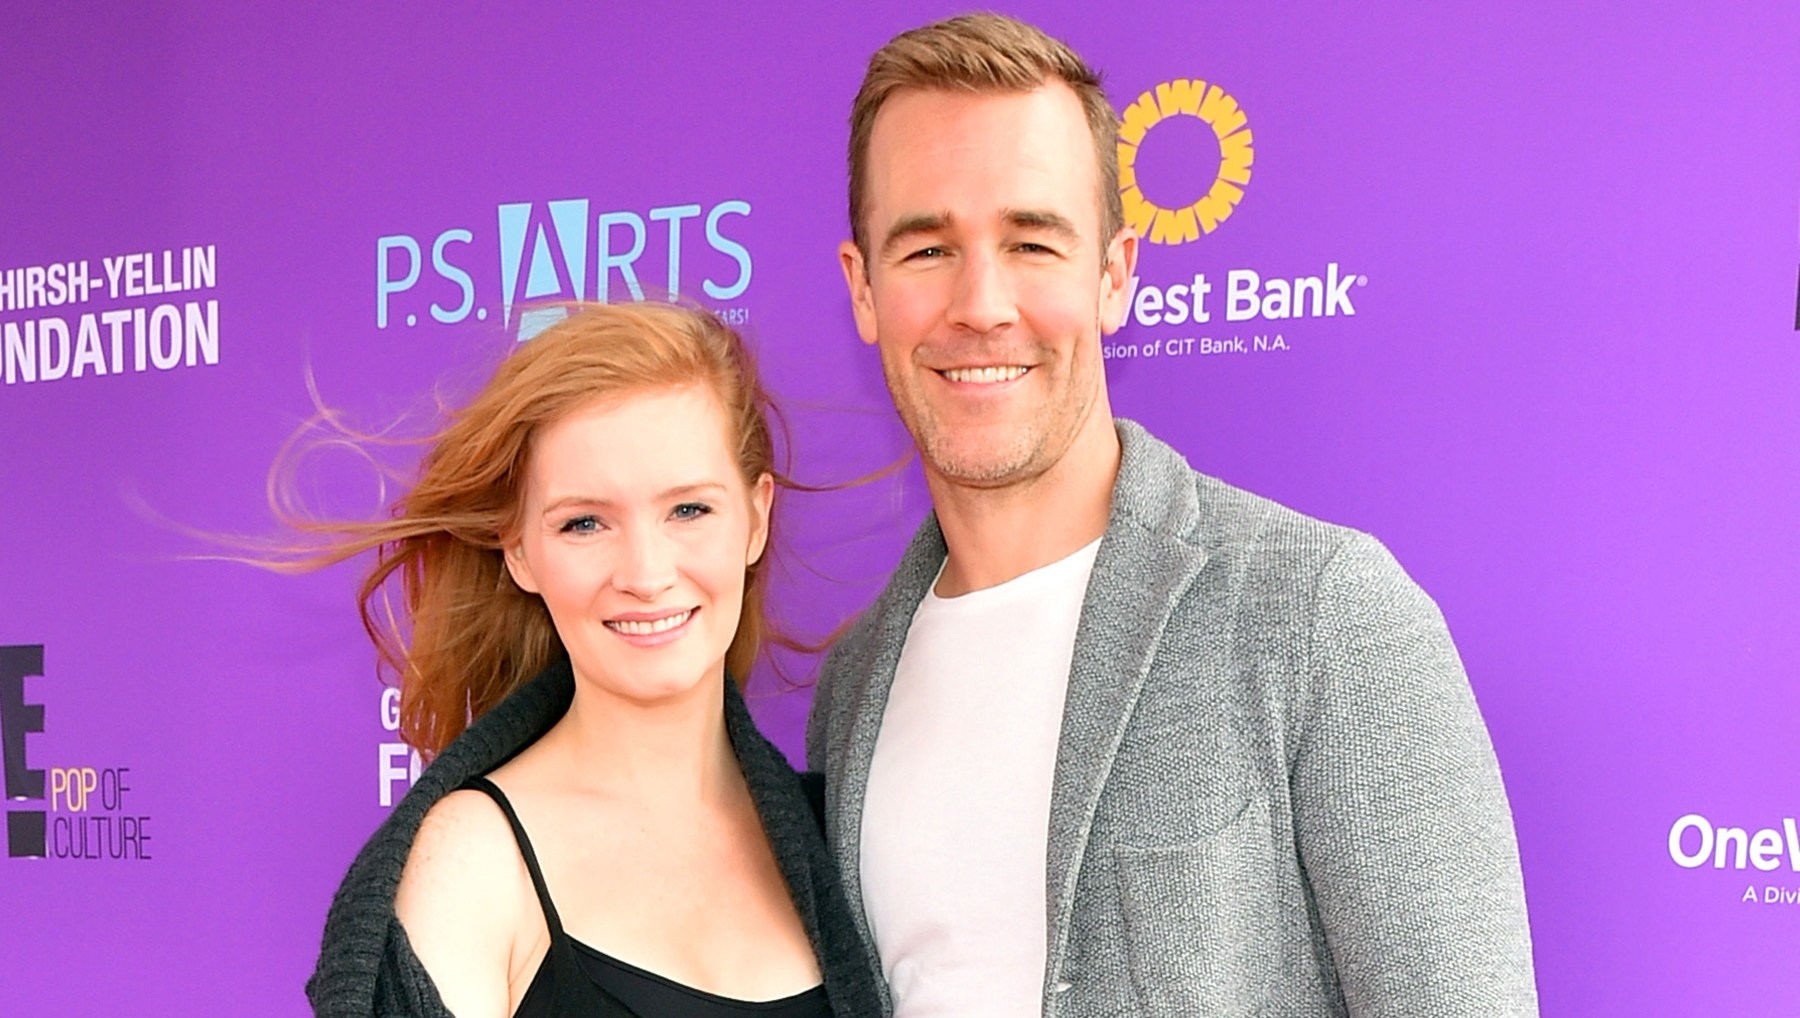 Kimberly Brook and actor James Van Der Beek pregnanat